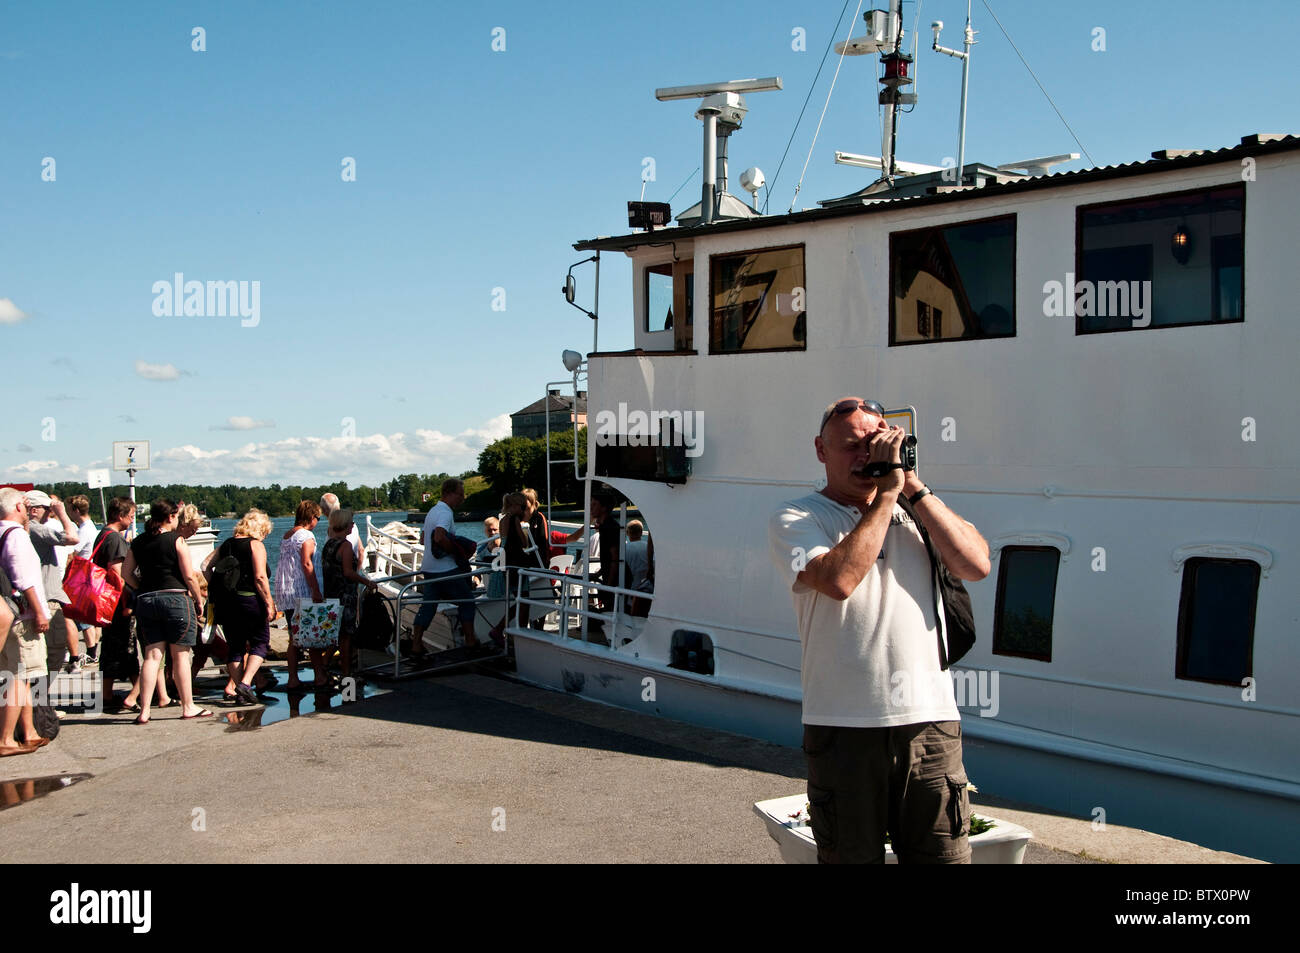 Tourist embark on ferry to Stockholm from the summer town of Vaxholm in the archipelago - Stock Image